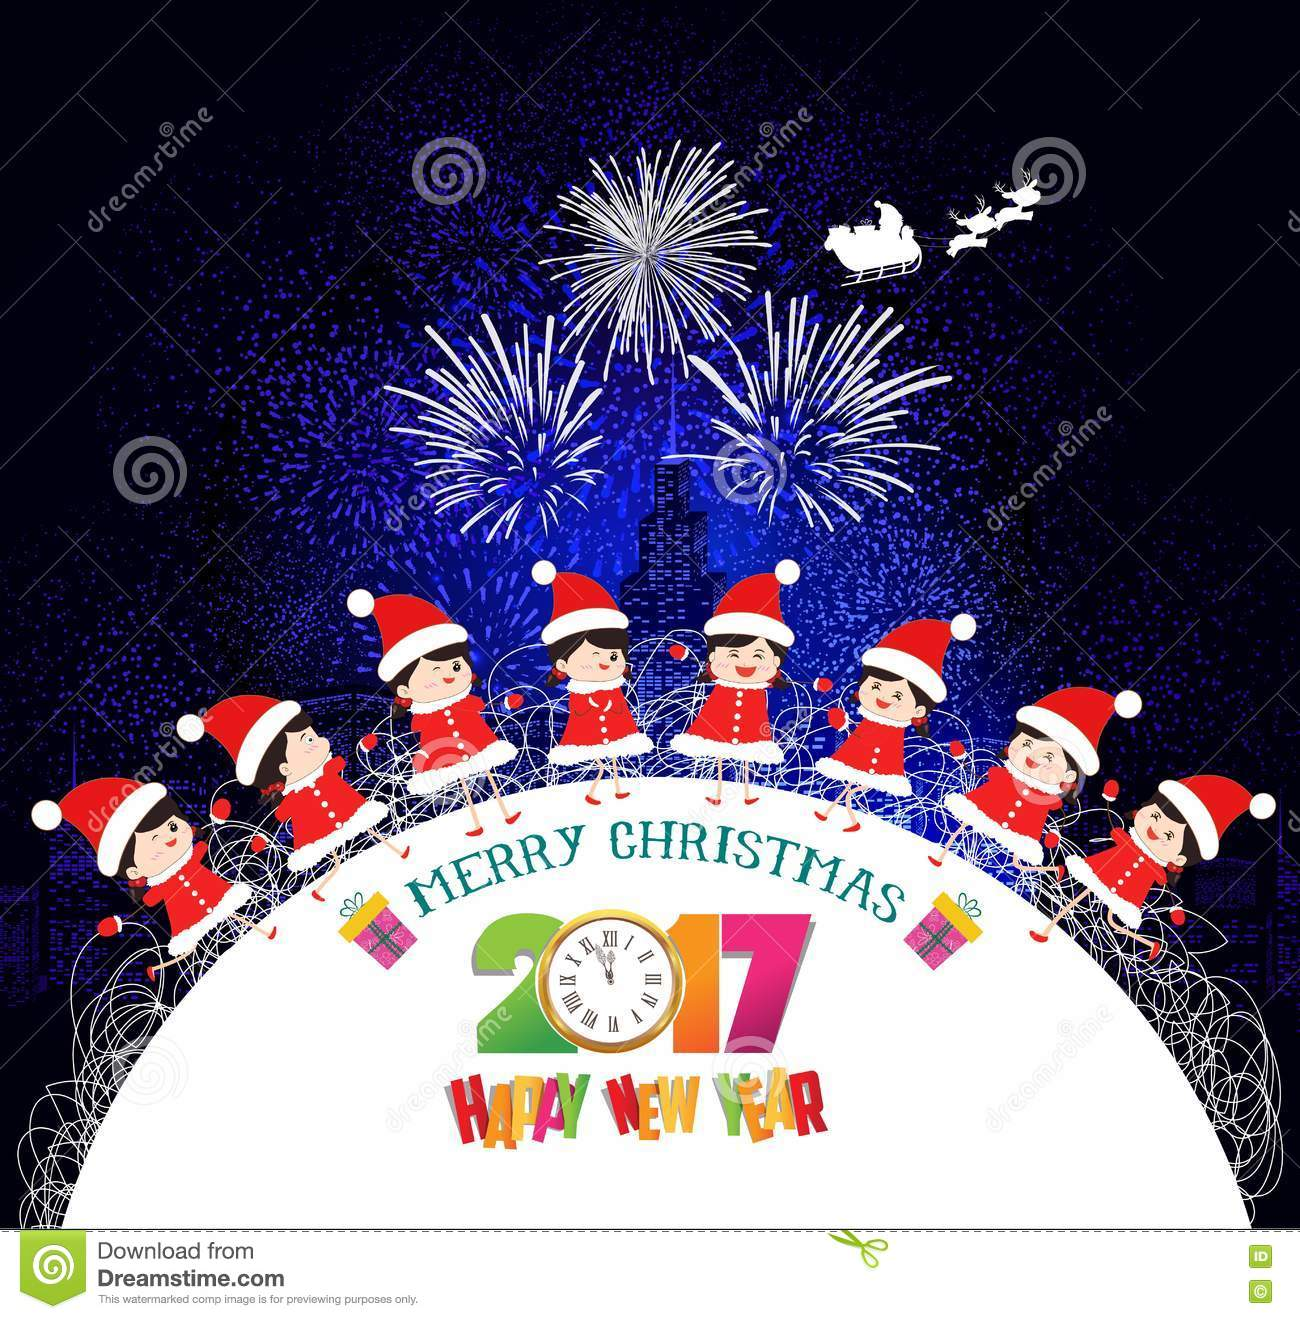 Merry Christmas And Happy New Year Kids Background Children In Circle Winter Stock Vector